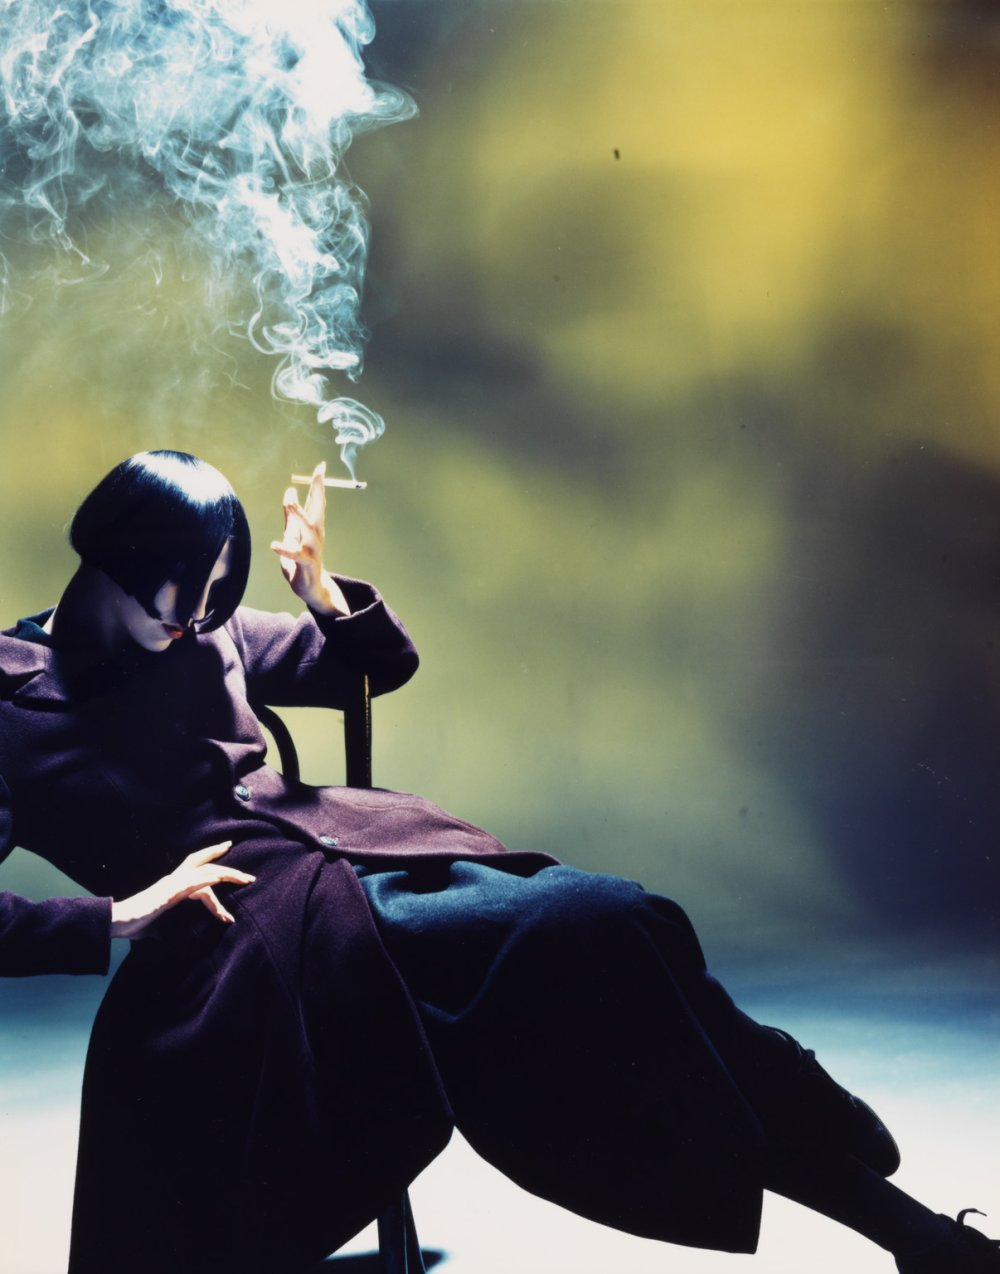 Suzie Smoking, 1988, by Nick Knight